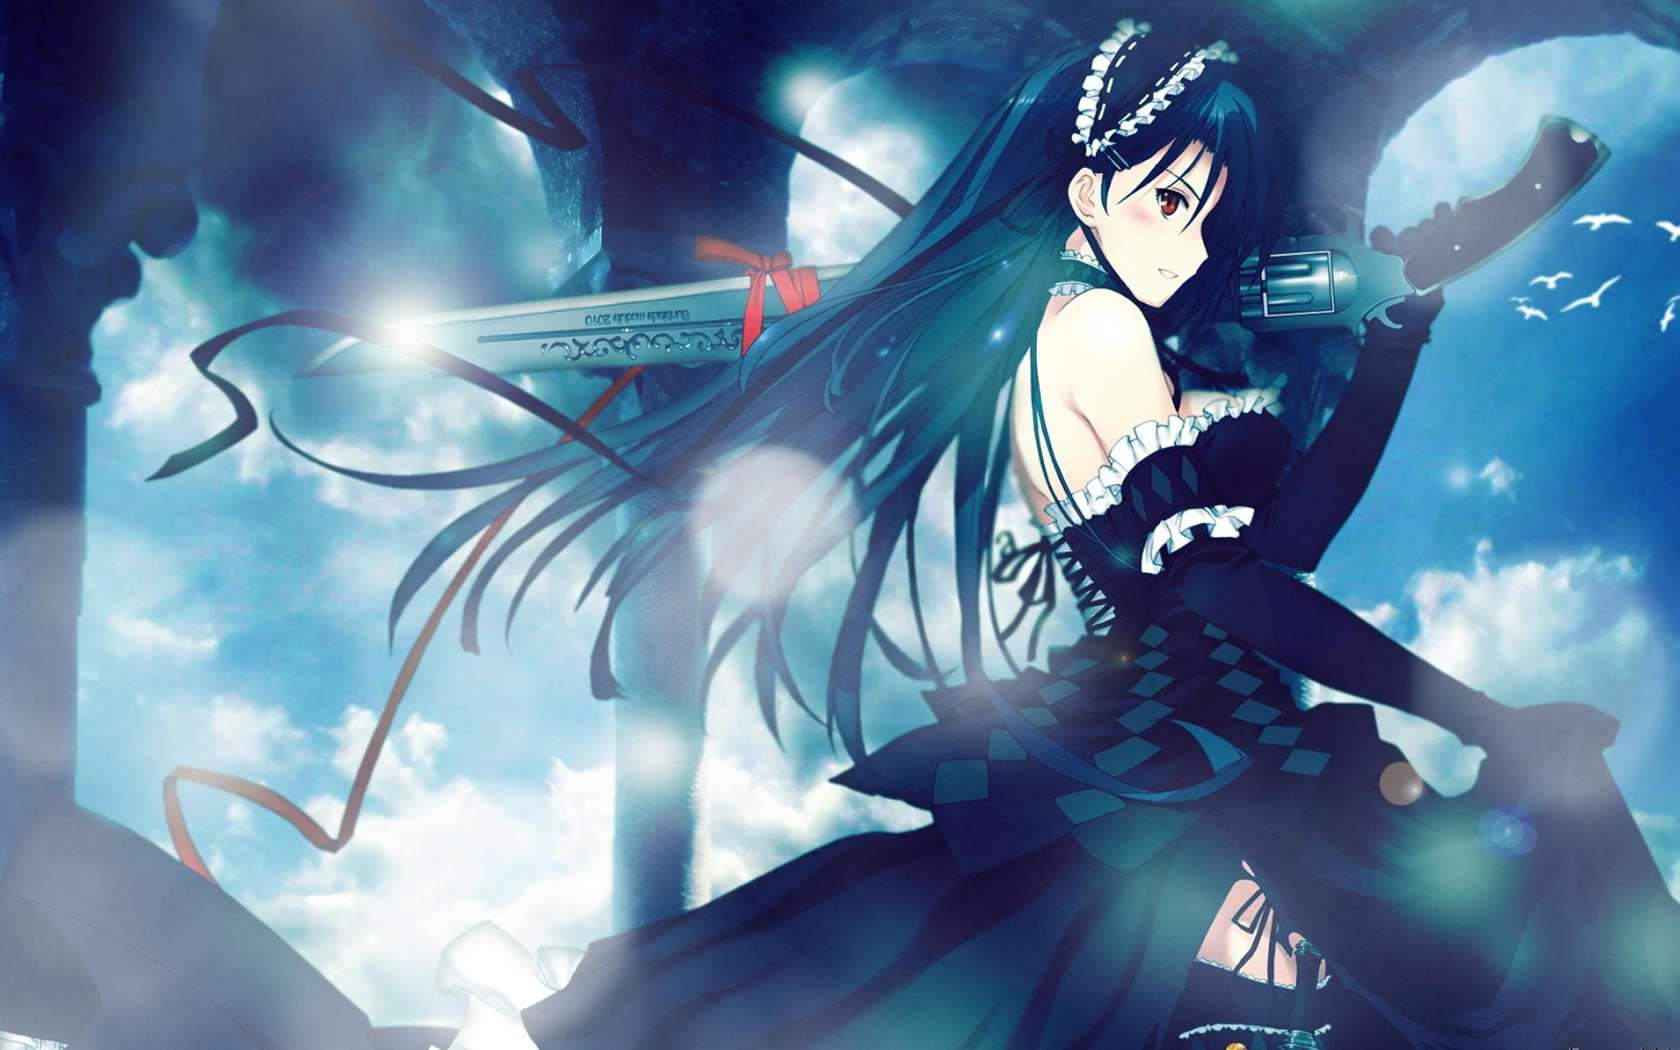 Anime wallpaper 9 geek project for Imagenes anime hd full